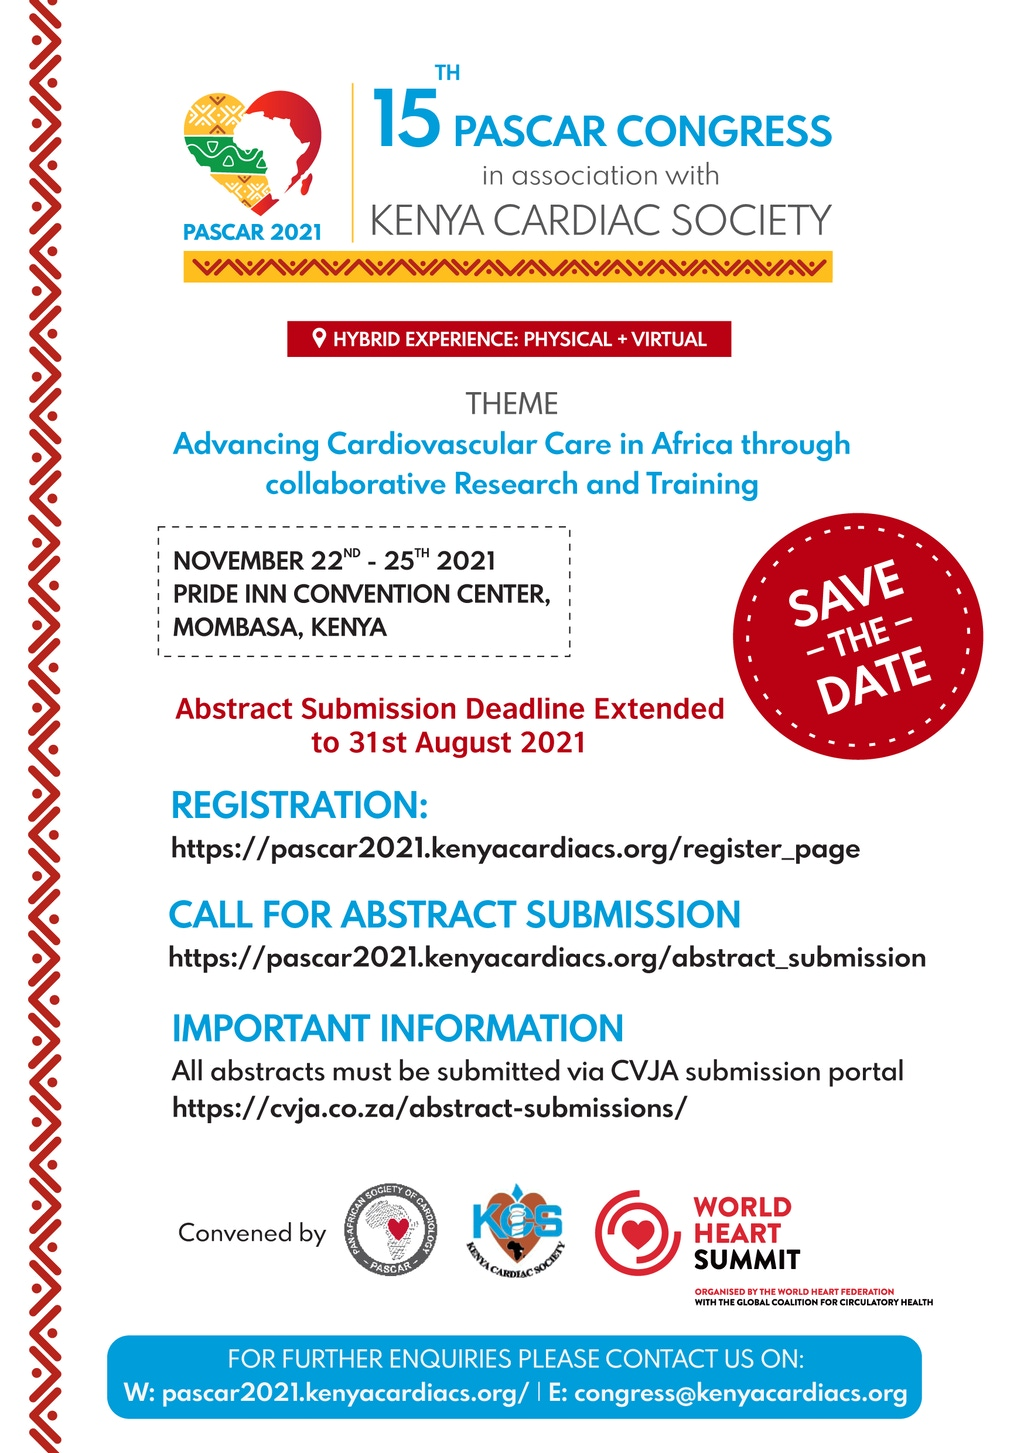 Save The Date Flyer Deadline Extension